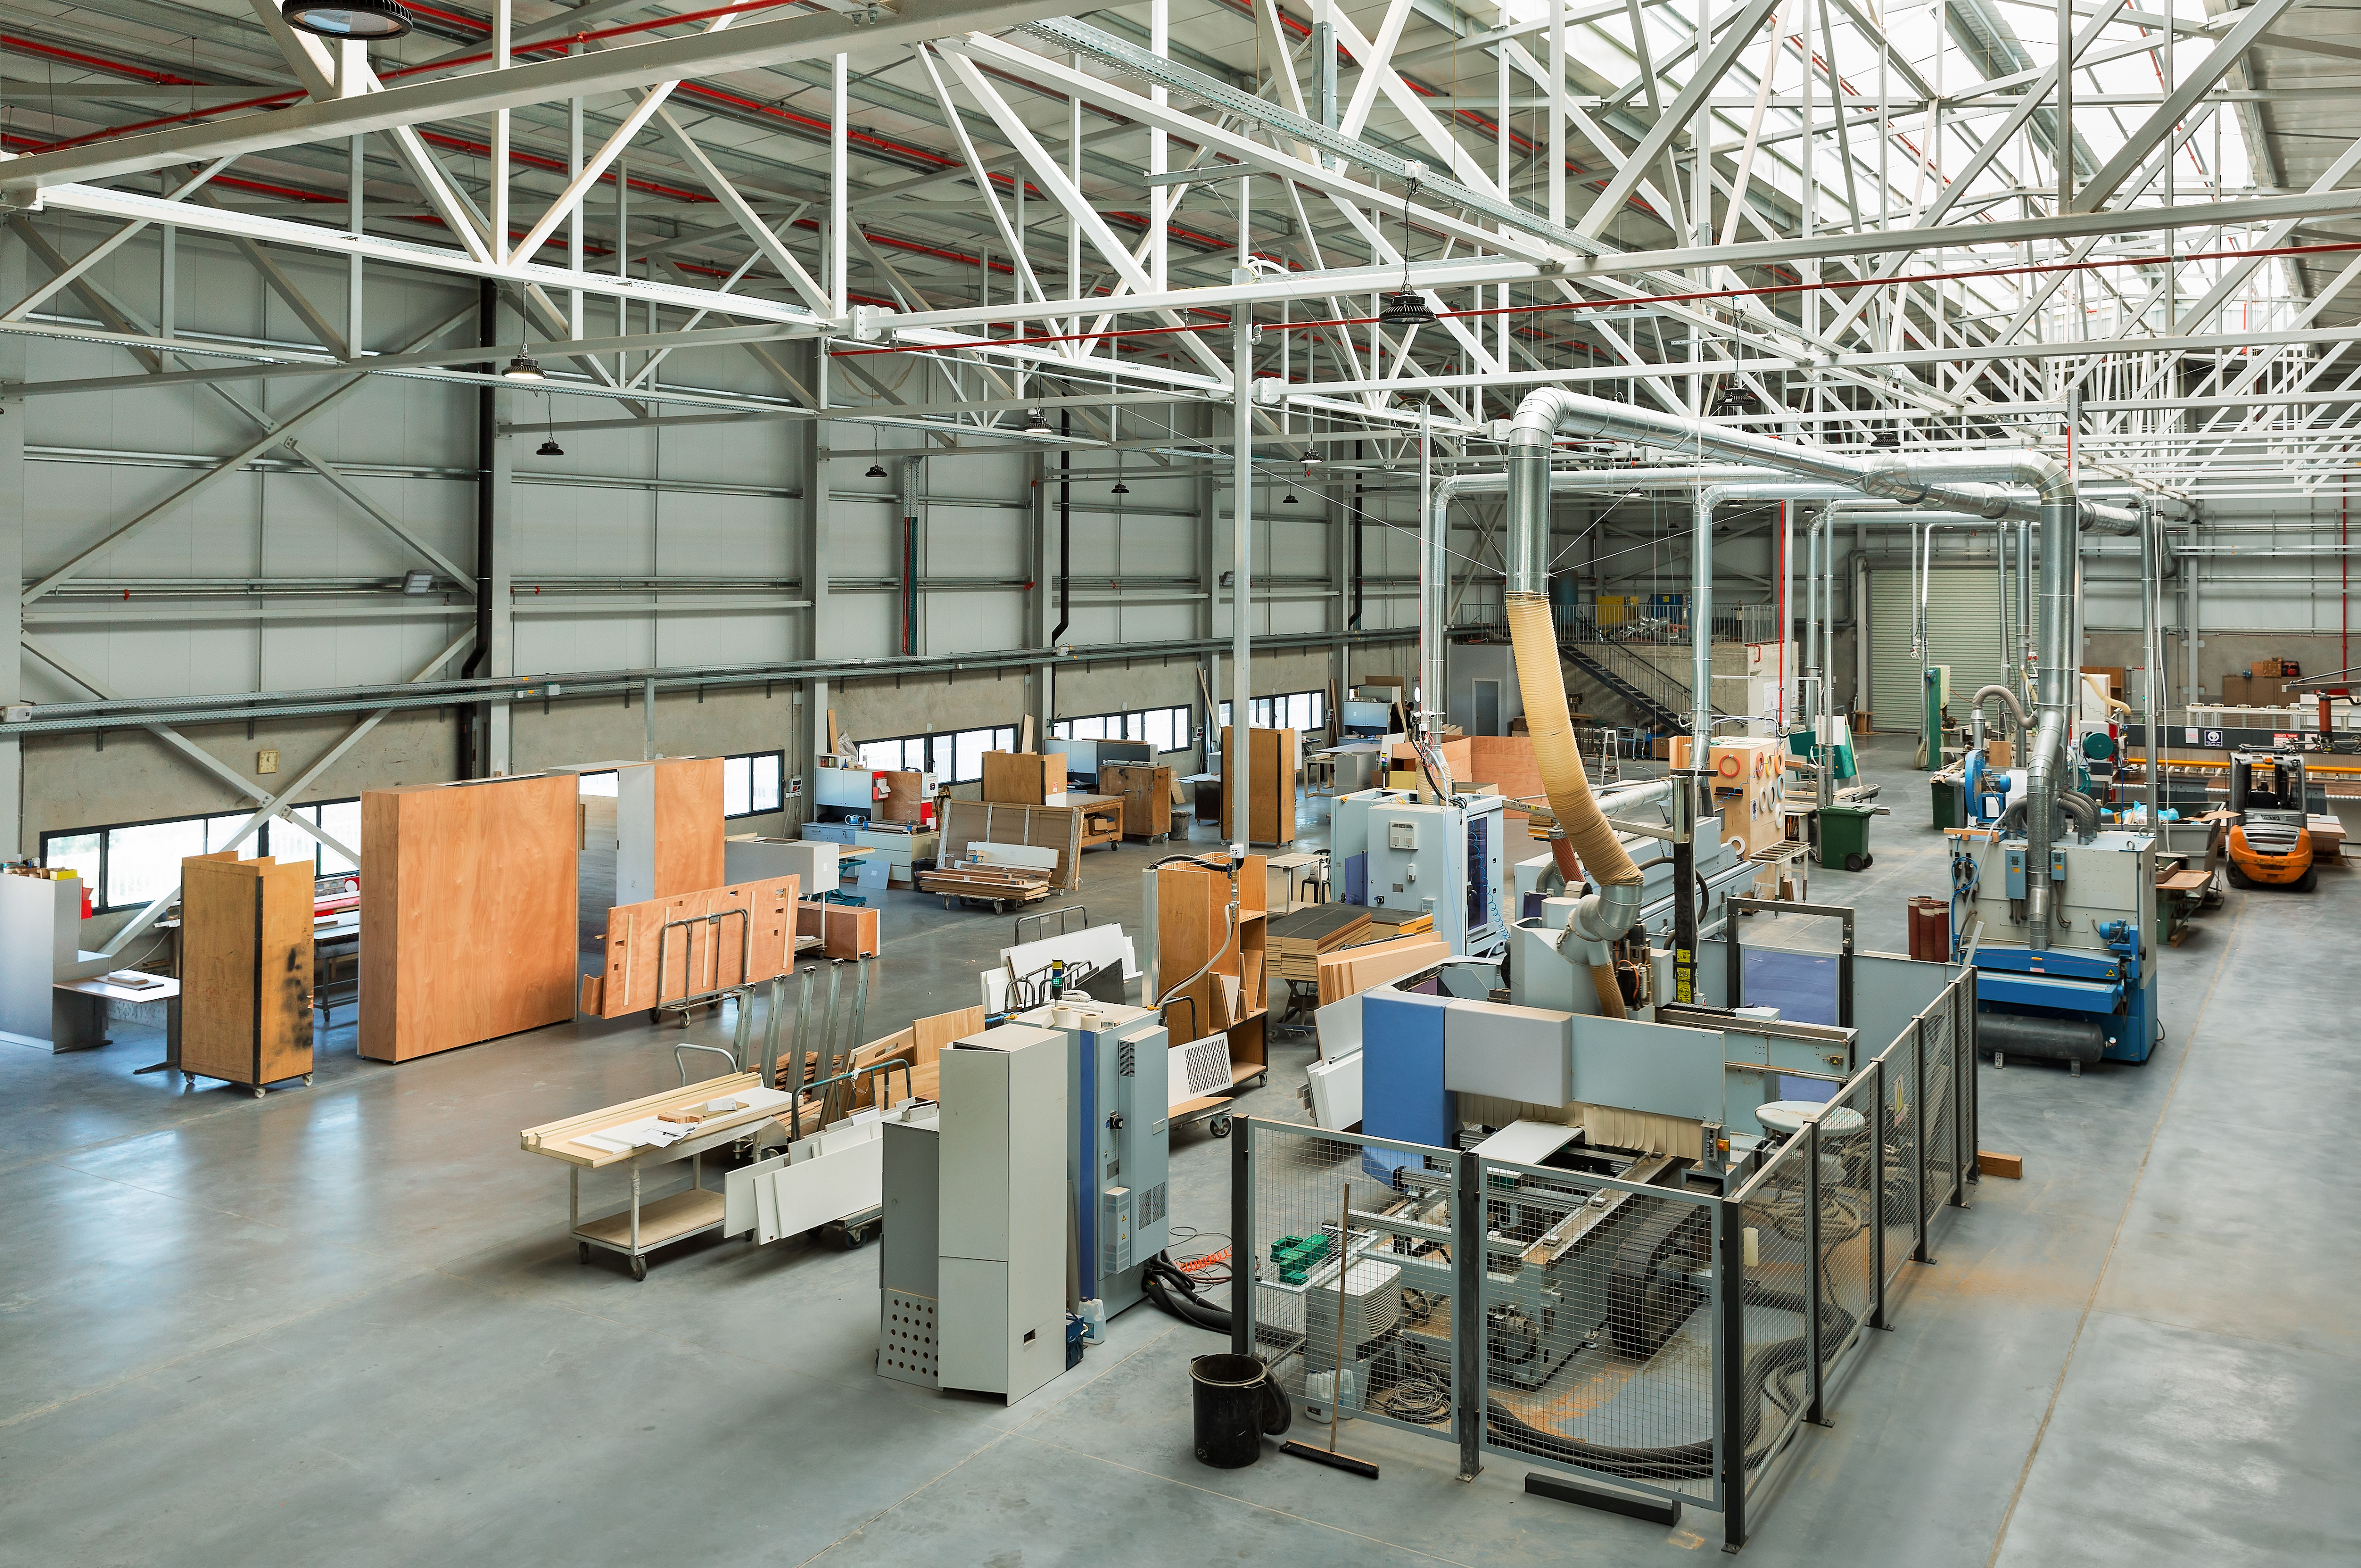 furniture manufacturing in Mexico